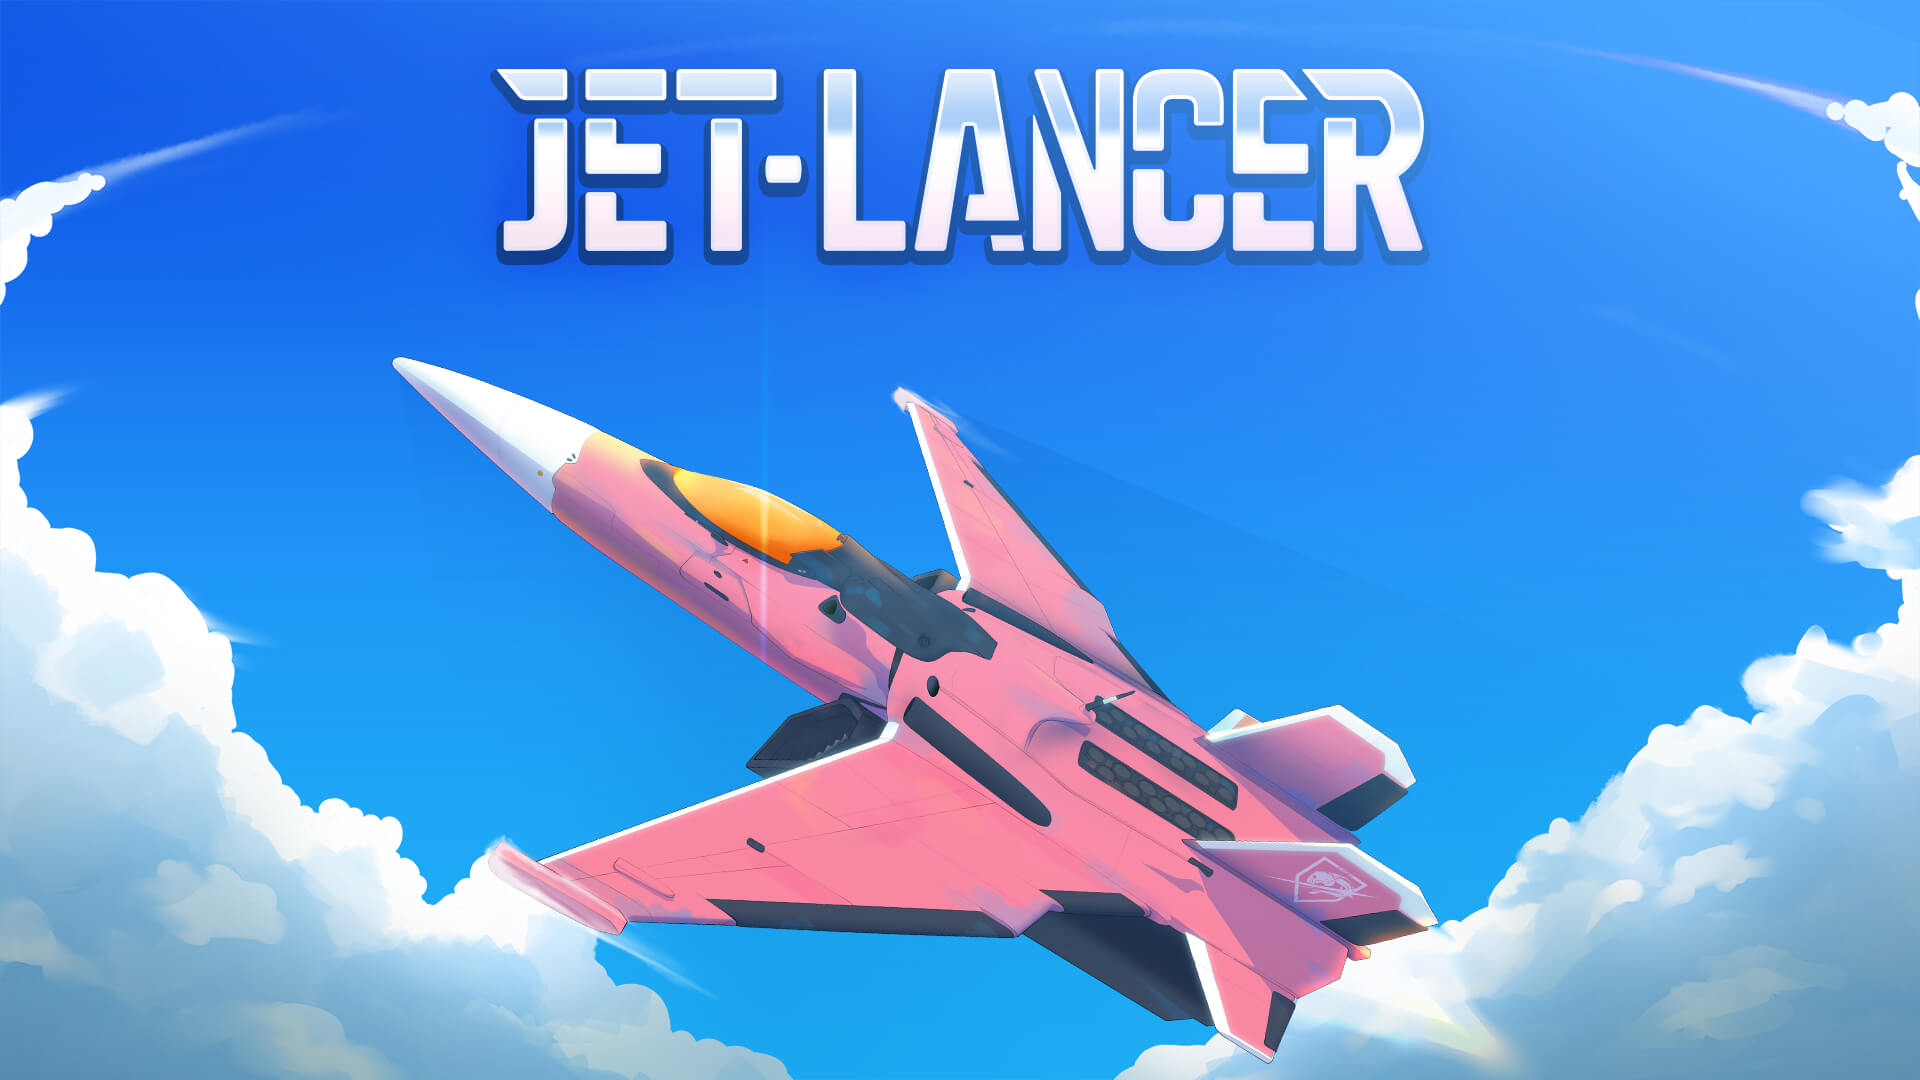 Jet Lancer Free PC Download